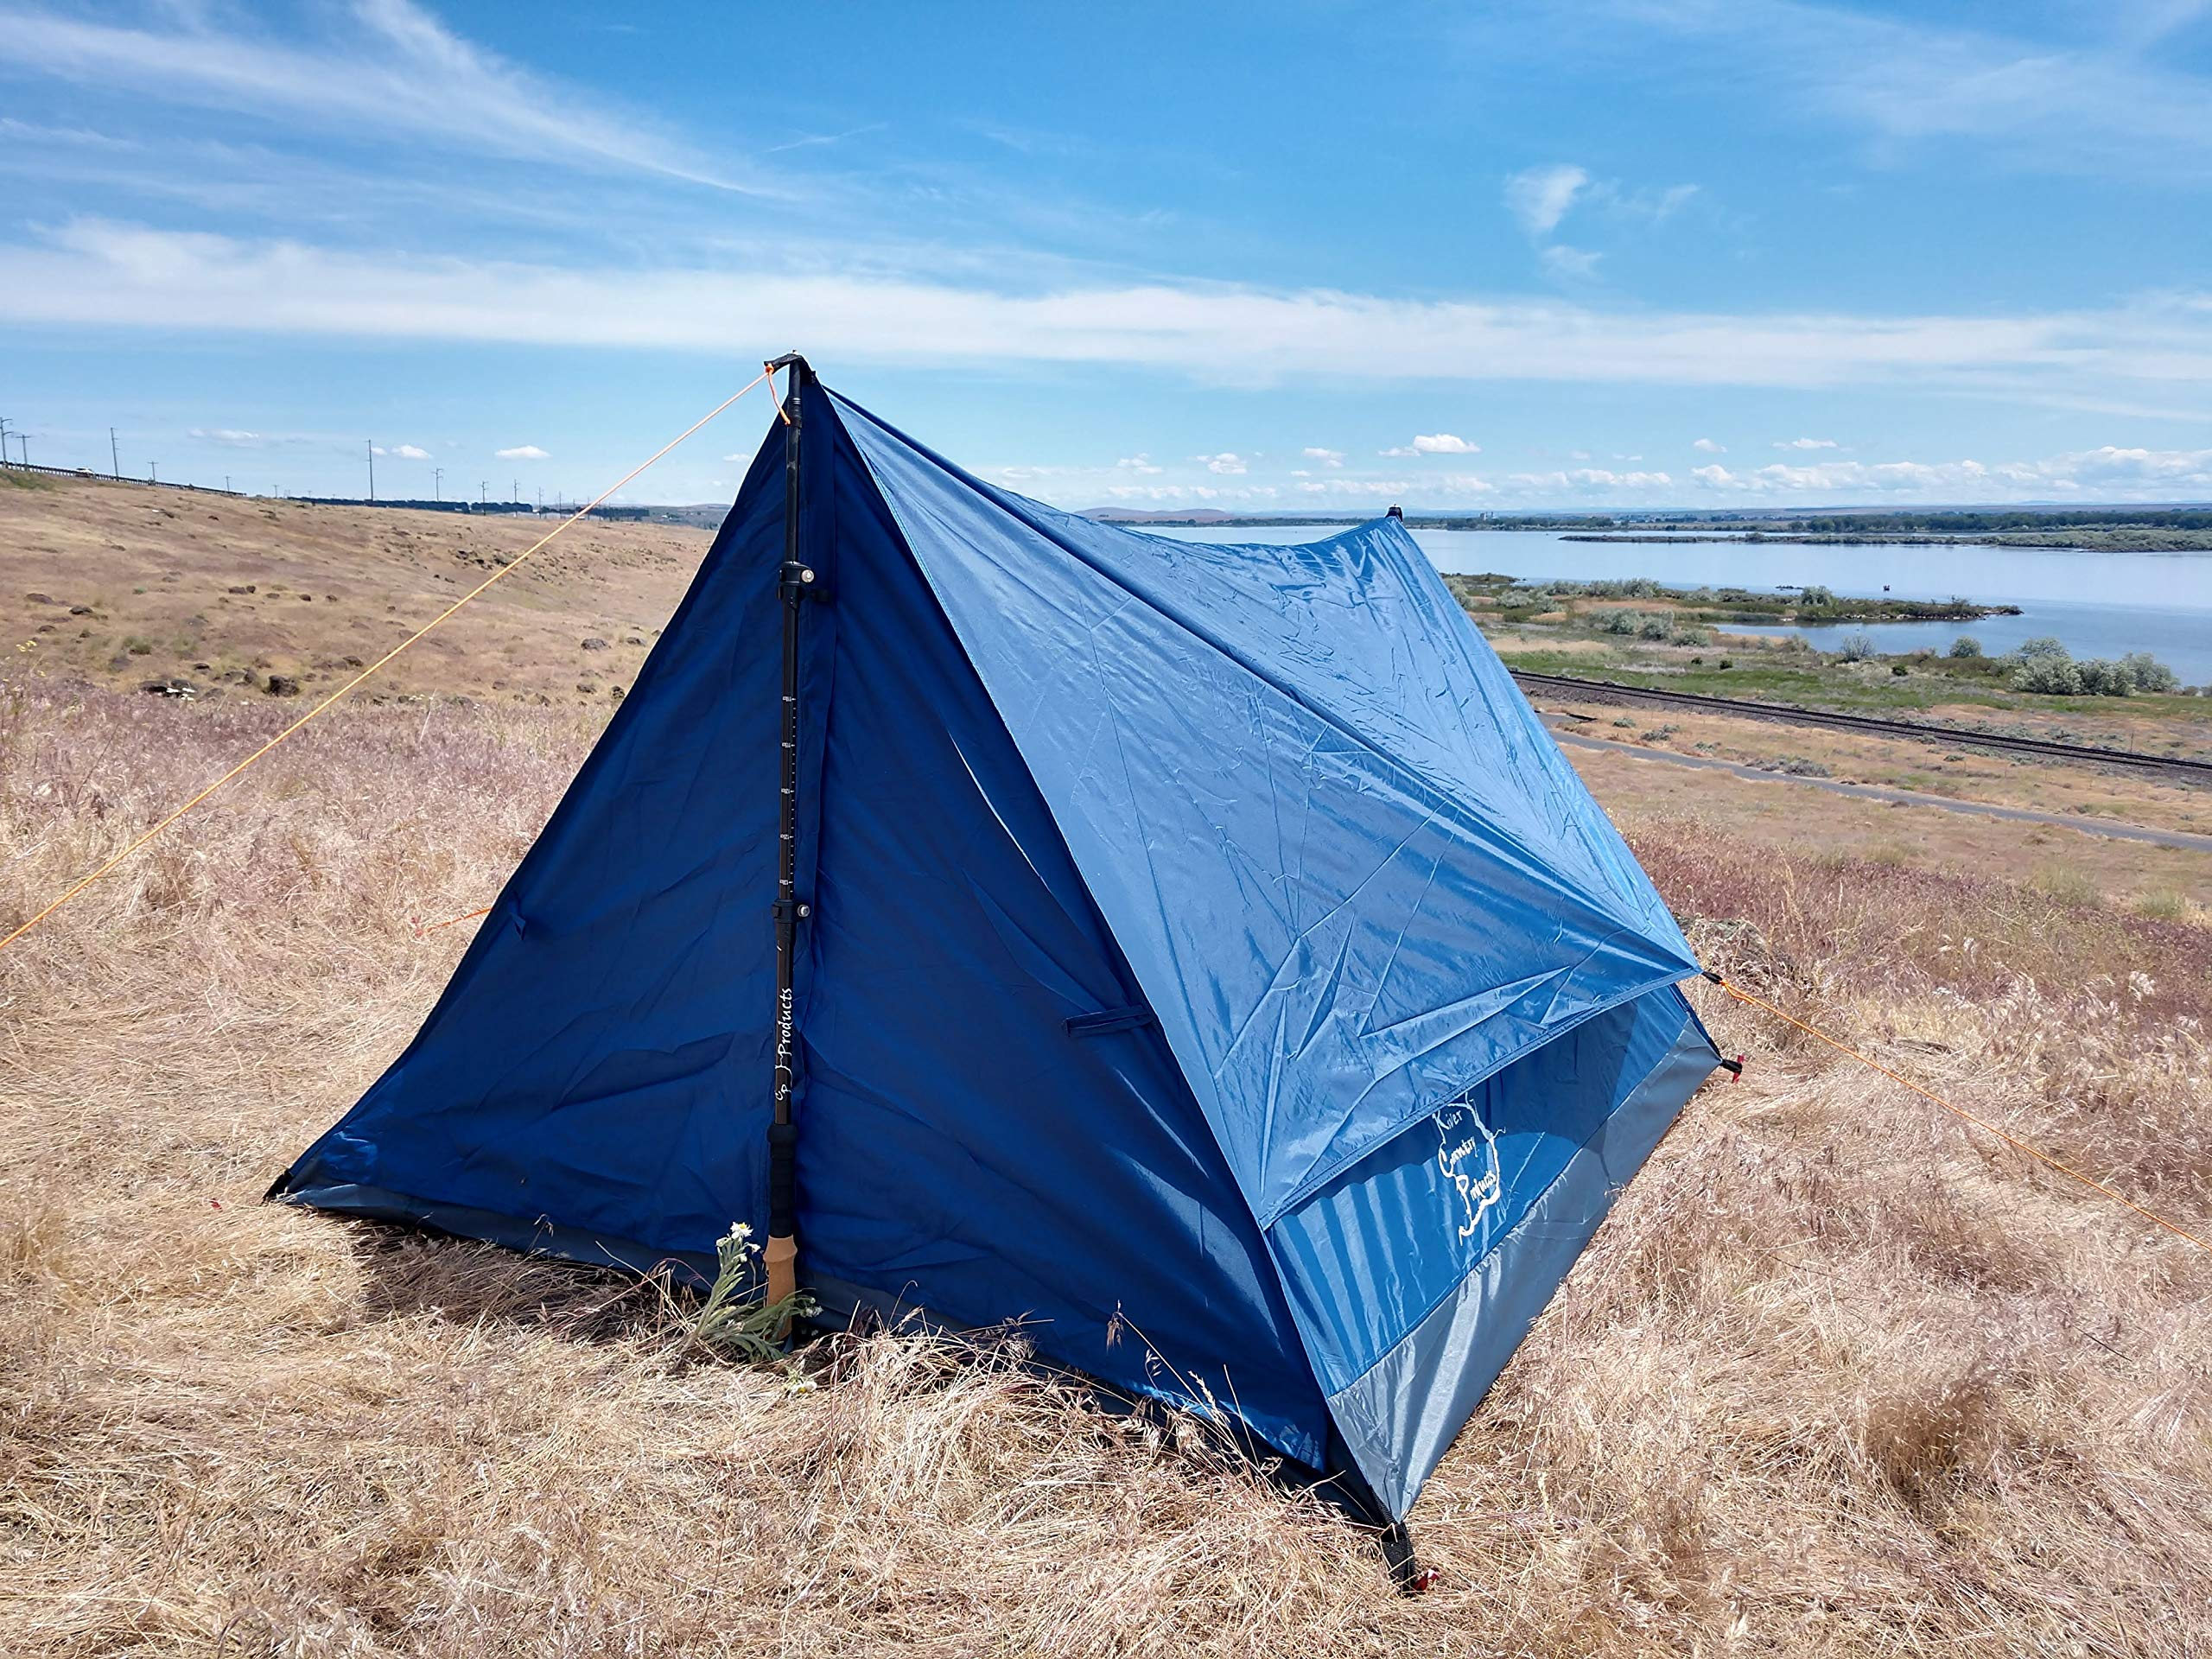 River Country Products Trekker Tent 2.2, Two Person Trekking Pole Backpacking Tent by River Country Products